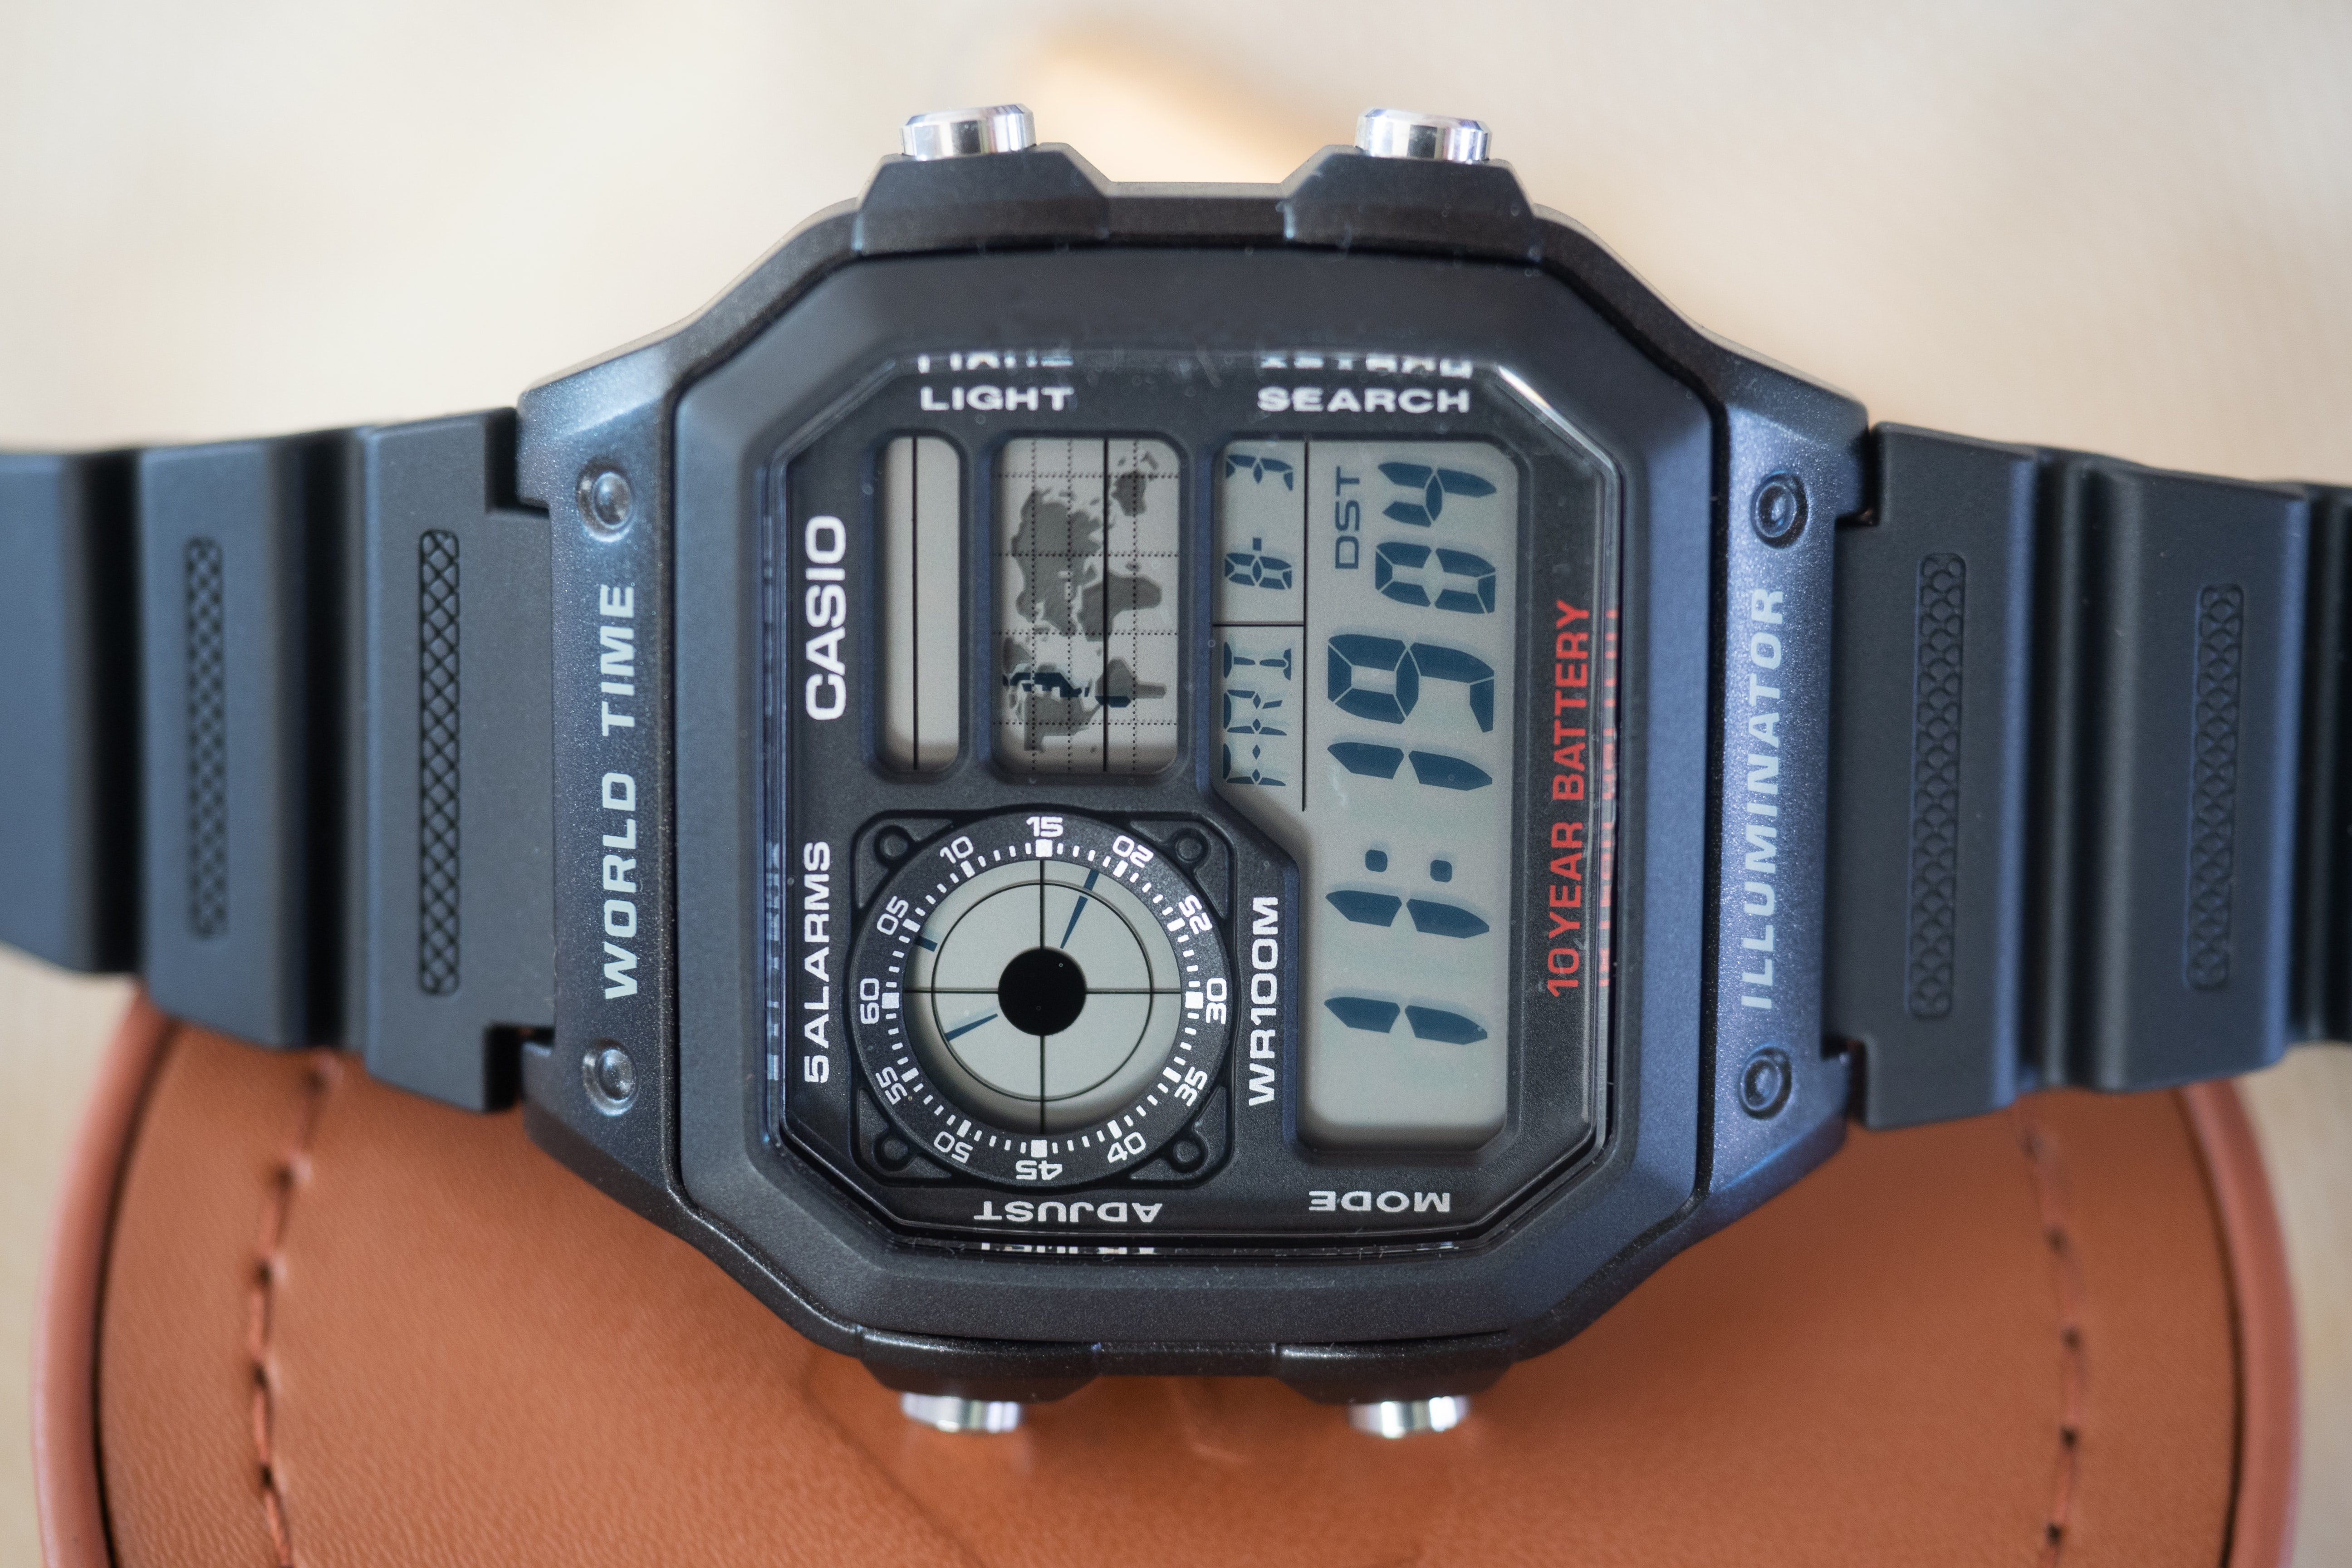 Casio World Map Watch.The Value Proposition The Casio Ae1200wh 1a World Timer At Less